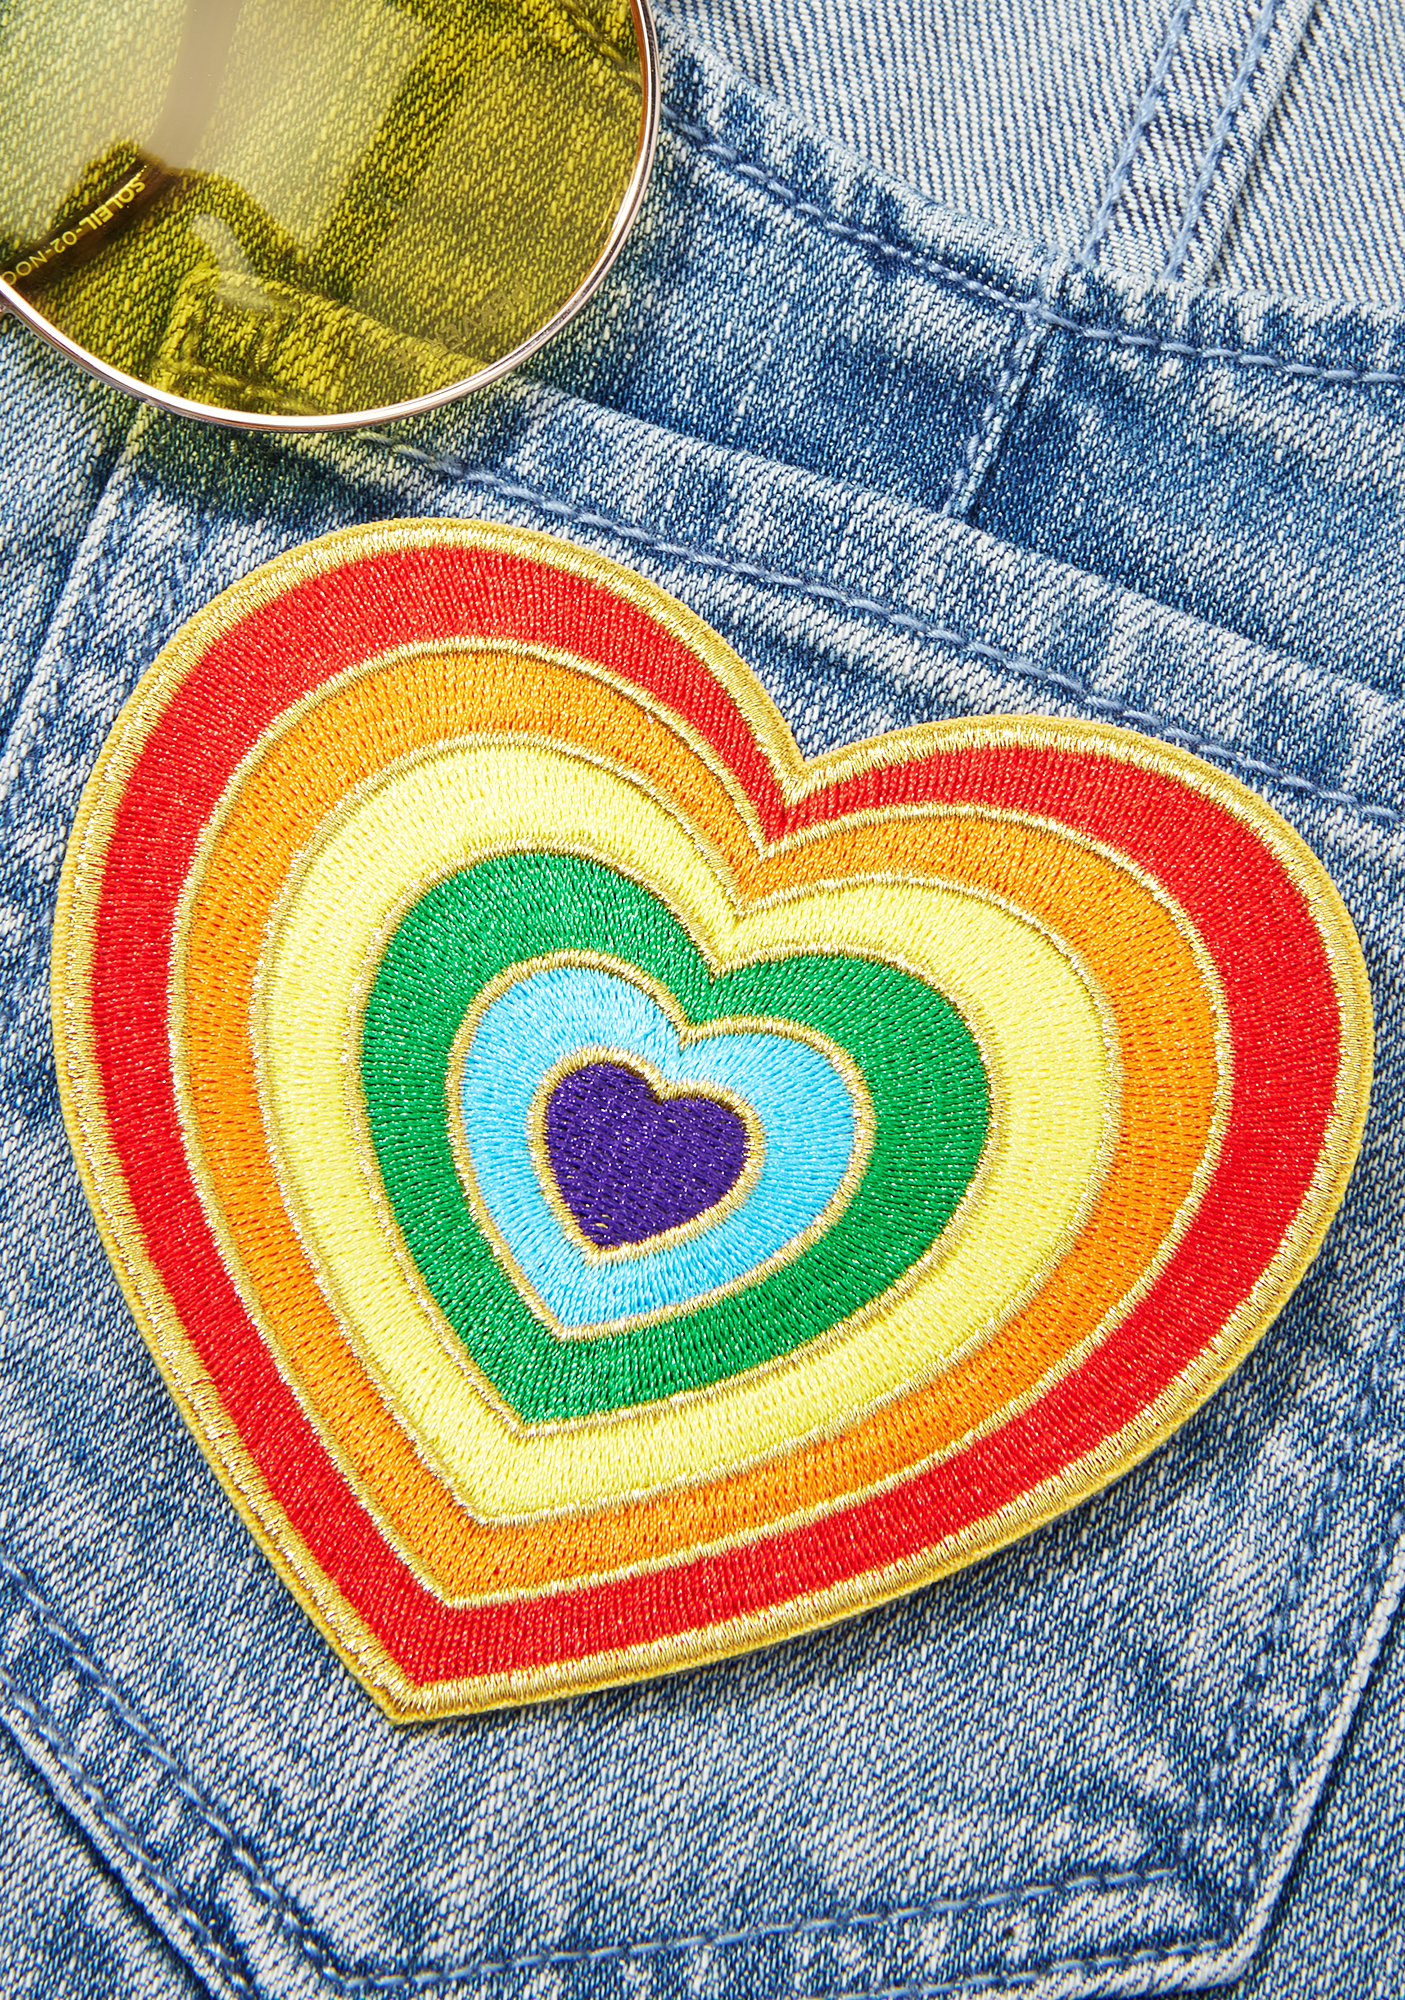 Laser Kitten Love Vibes Patch